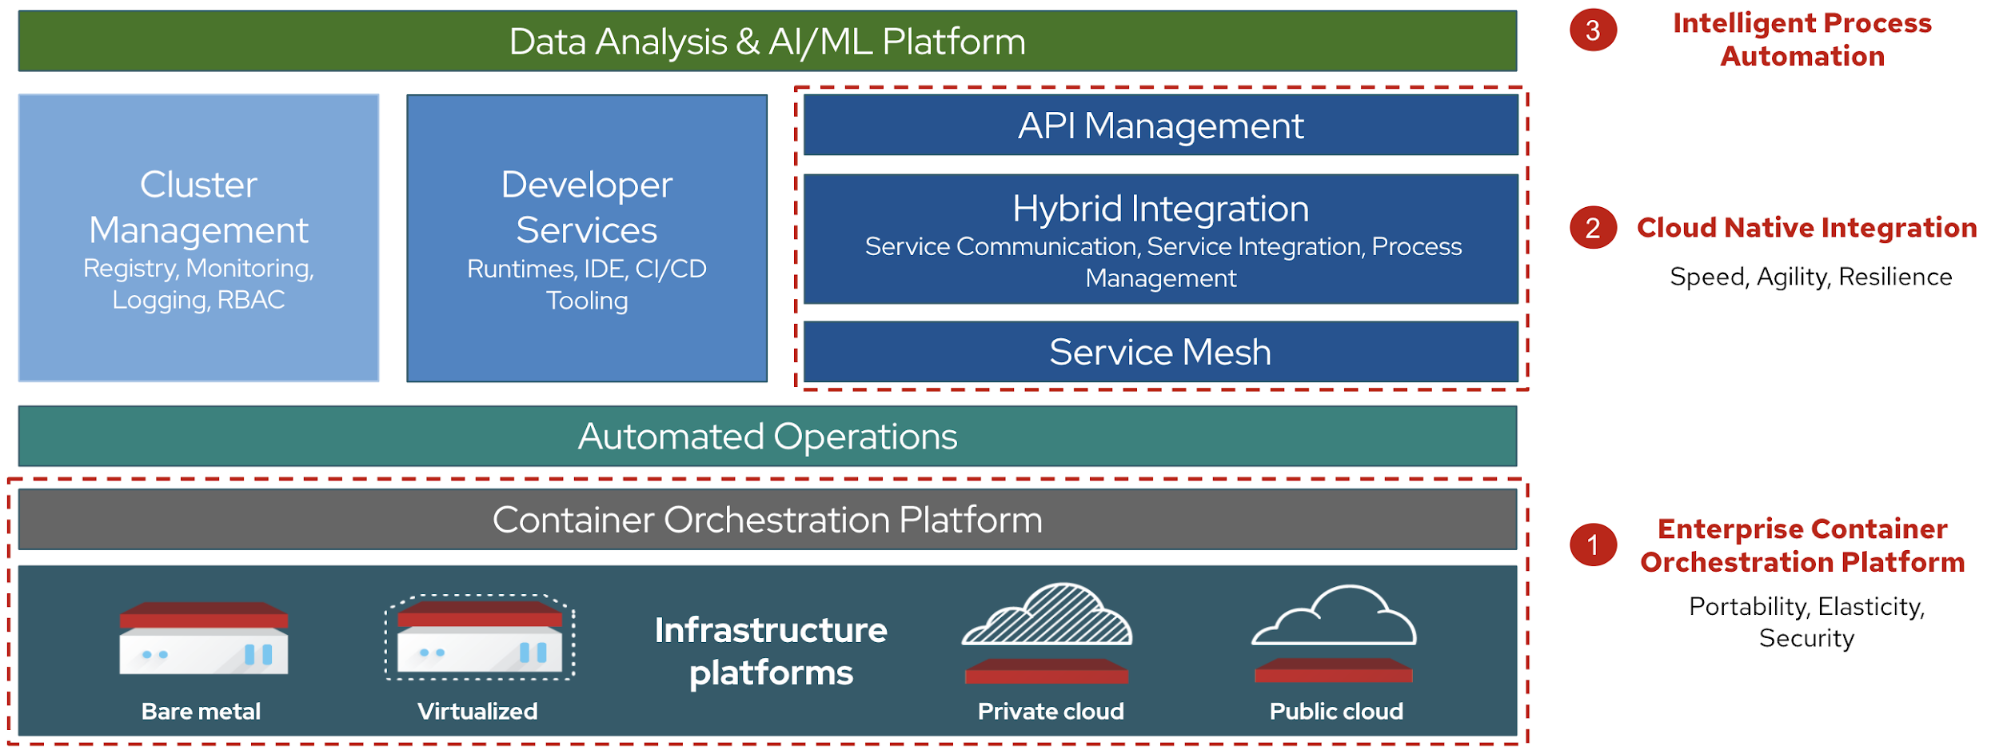 Figure 1: payment services diagram showing layers of 1) enterprise container orchestration, 2) cloud native integration, 3) intelligent process automation